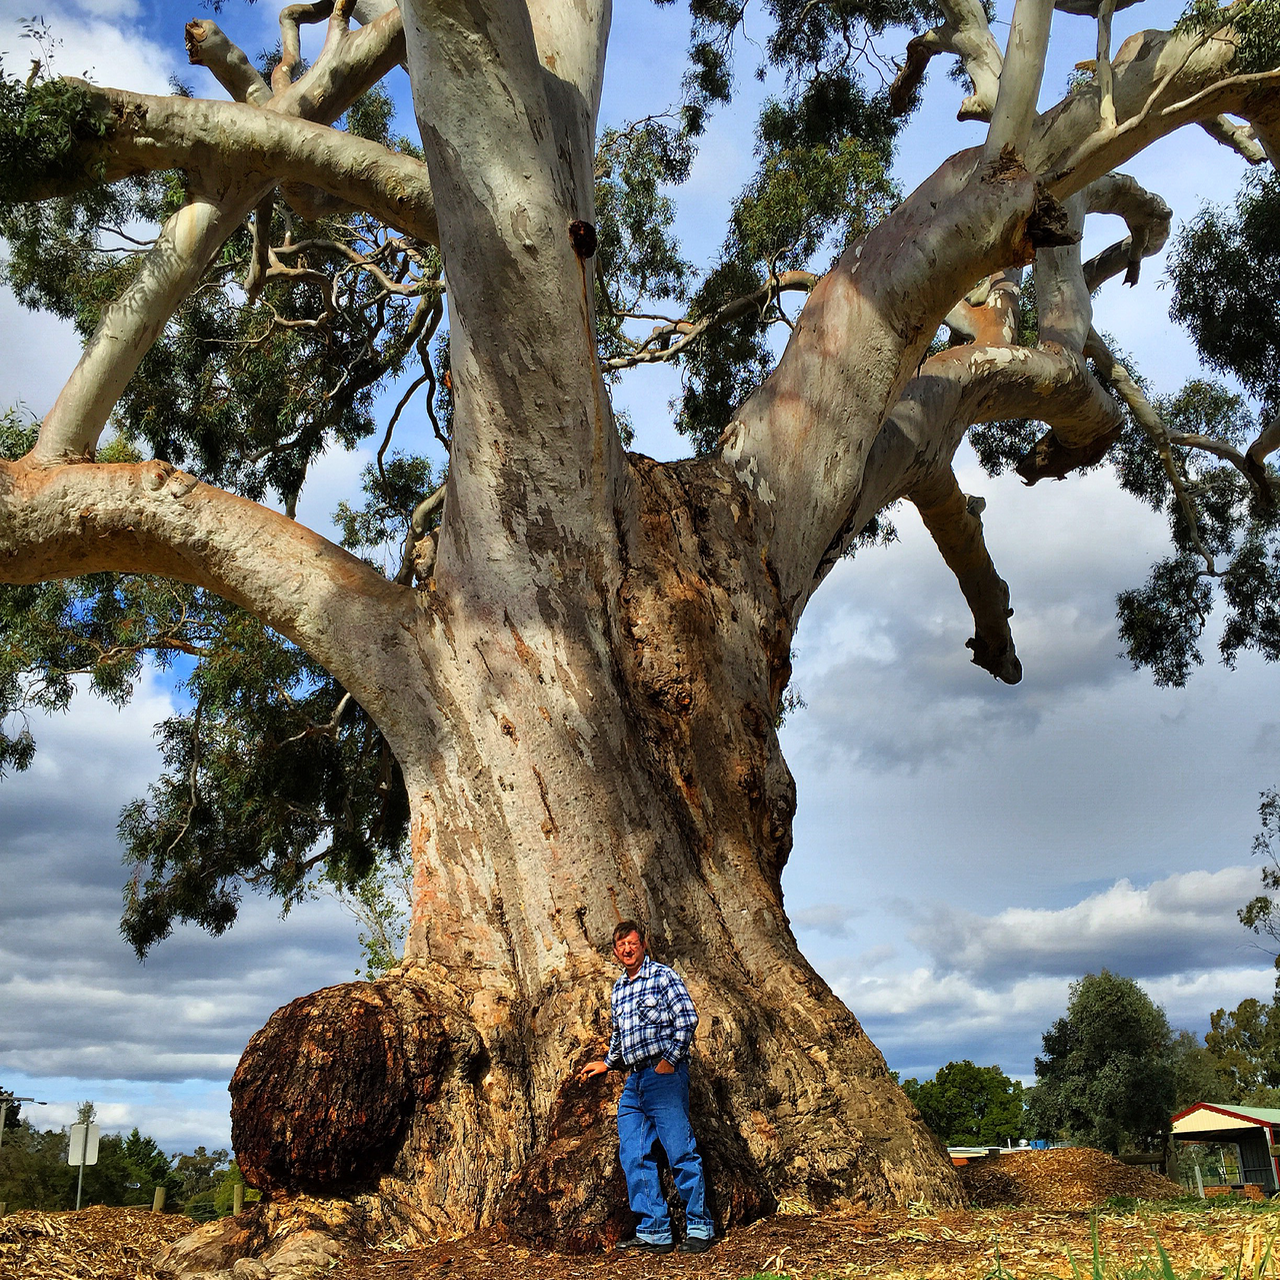 The Big Tree Is A Large Well Preserved River Red Gum Eucalyptus Camaldulensis Located At The Corner Of Fryers Street And Ball Australian Trees Big Tree Tree